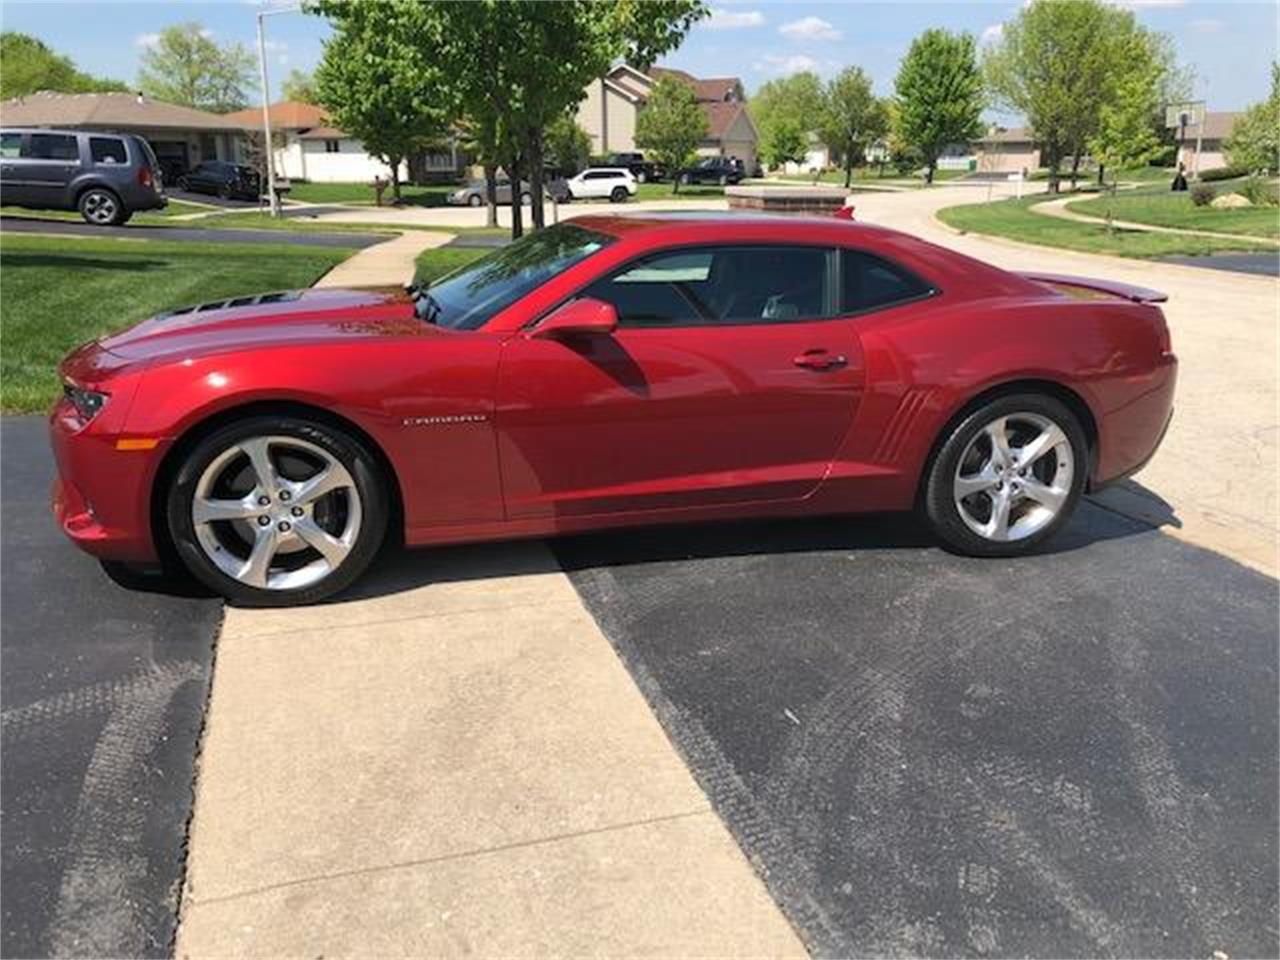 2014 Chevrolet Camaro SS (CC-1216926) for sale in Plainfield, Illinois